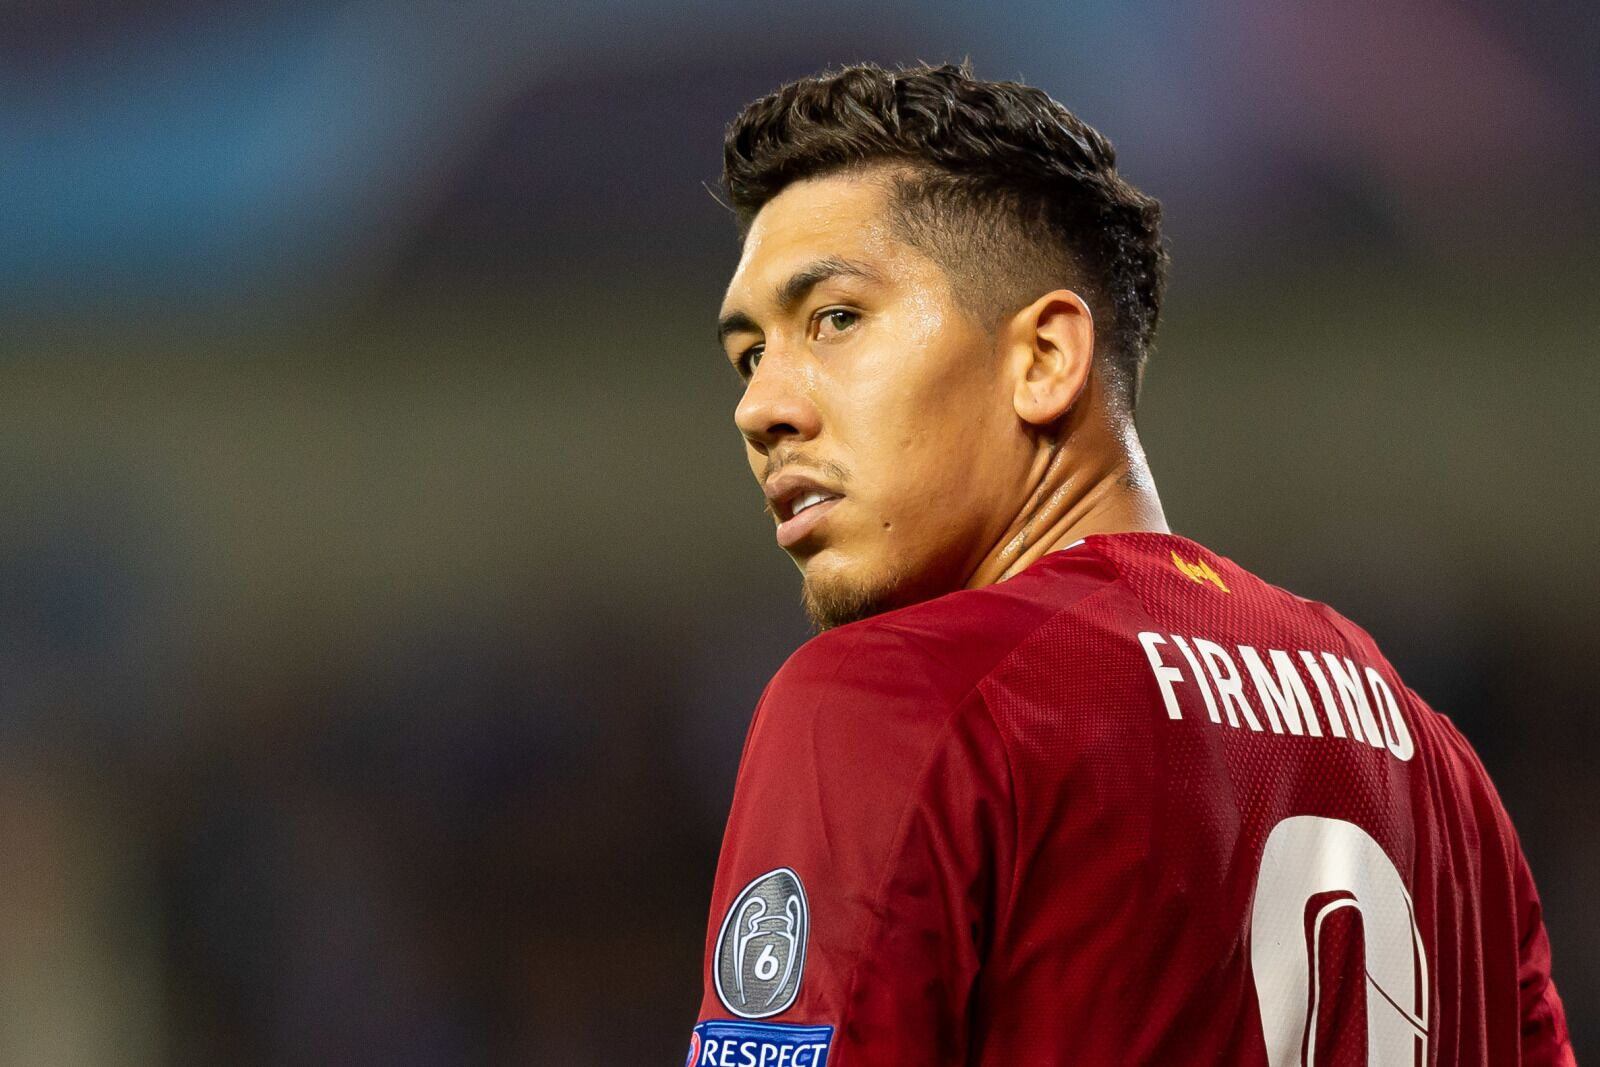 Liverpool: Have the Reds finally found the perfect back-up for Firmino?